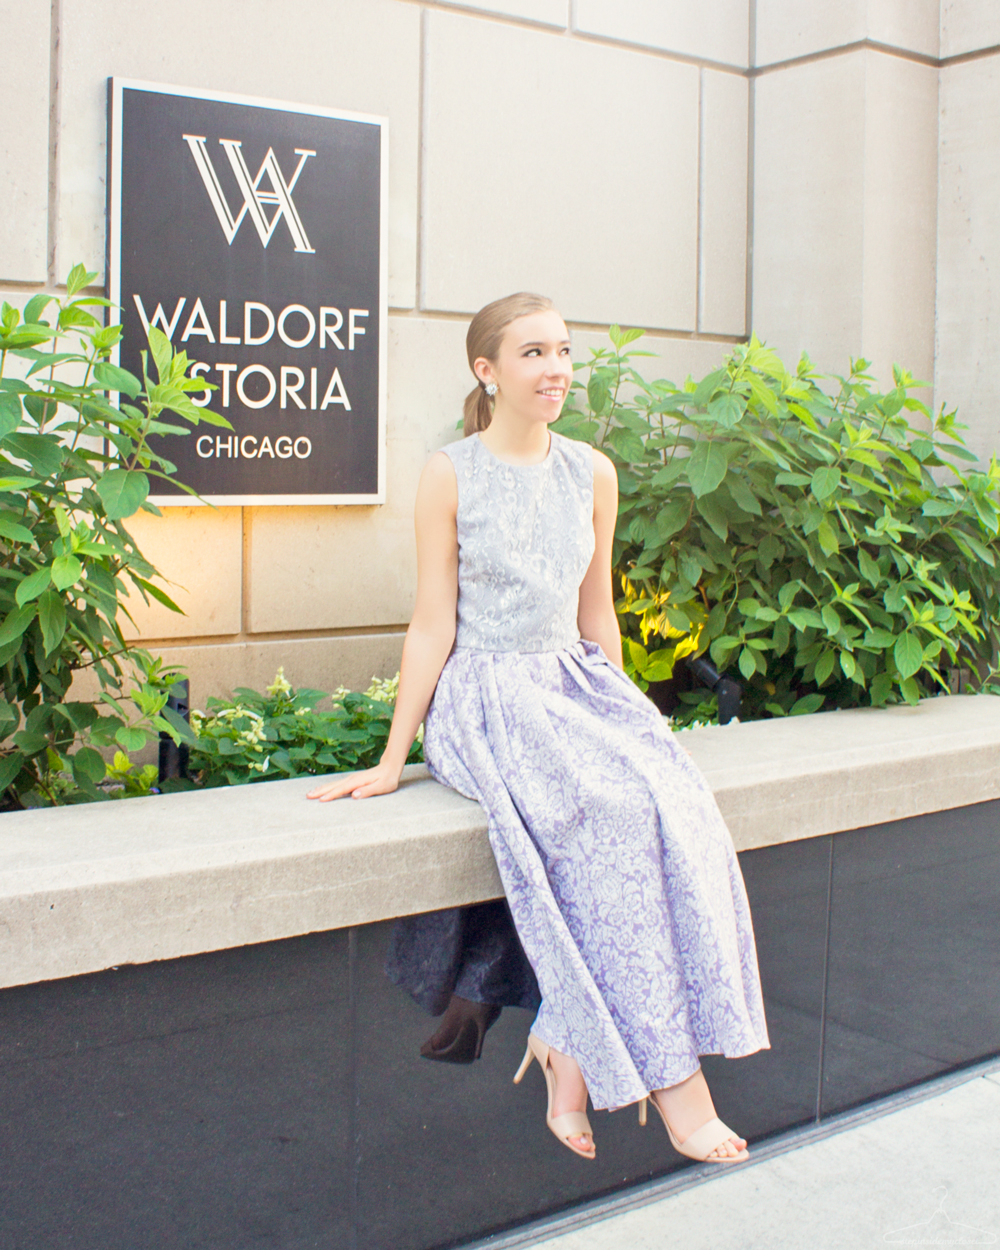 Step Inside My Closet: Waldorf Wardrobe - Waldorf Astoria, Chicago, outfit post, glamorous outfit post, badgley mischika, nine west, the shopping bag, yves saint laurent, outfit photography, hotels in chicago